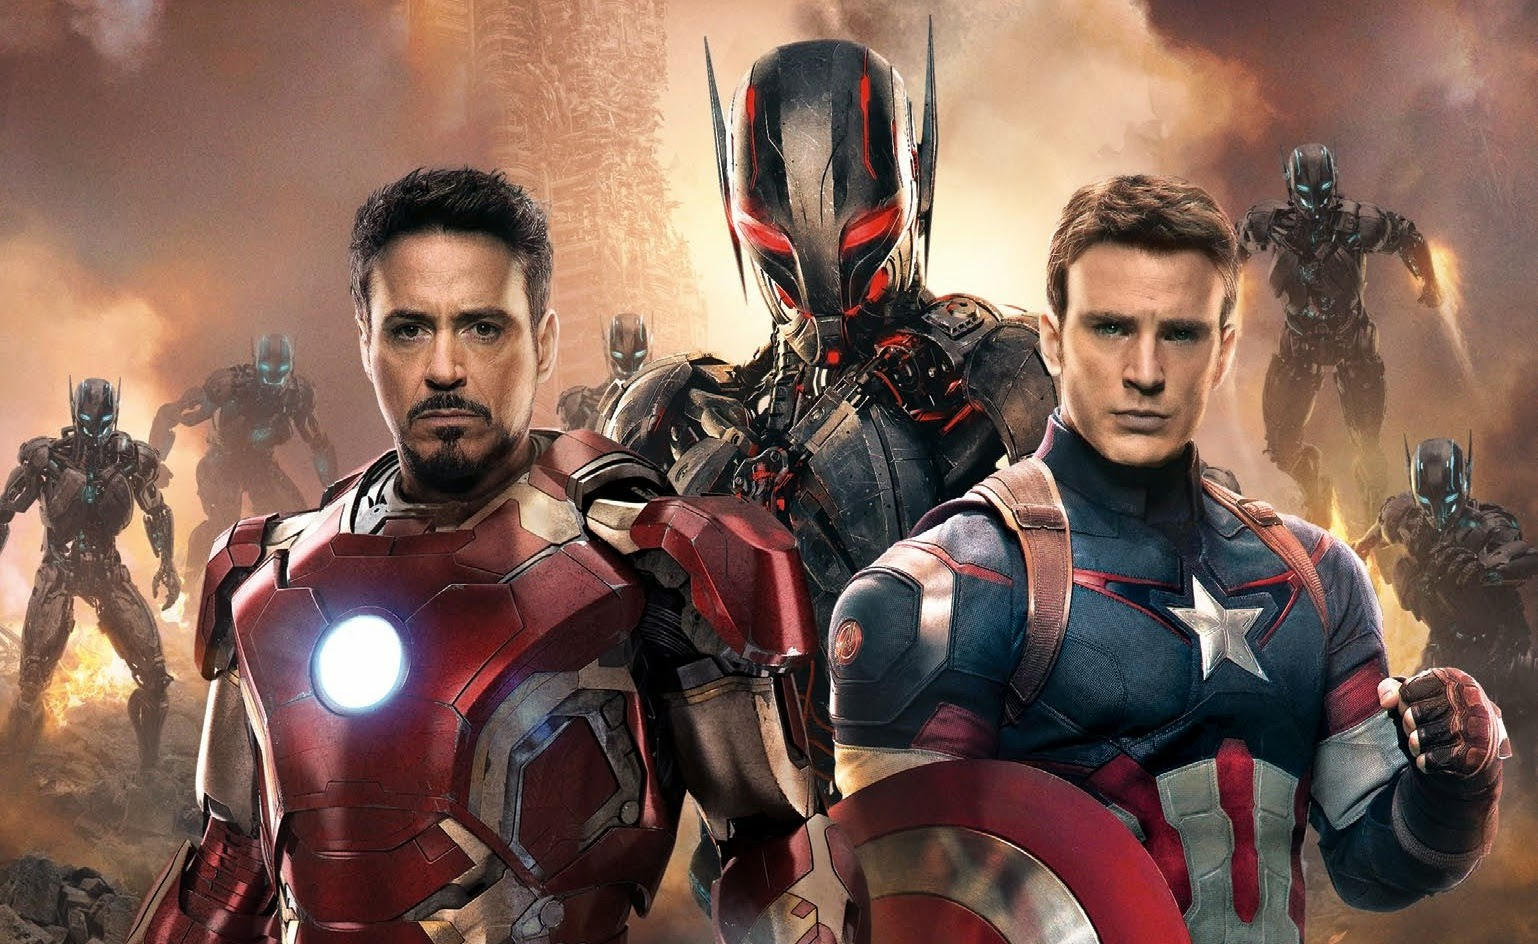 Espectacular trailer Avengers 2